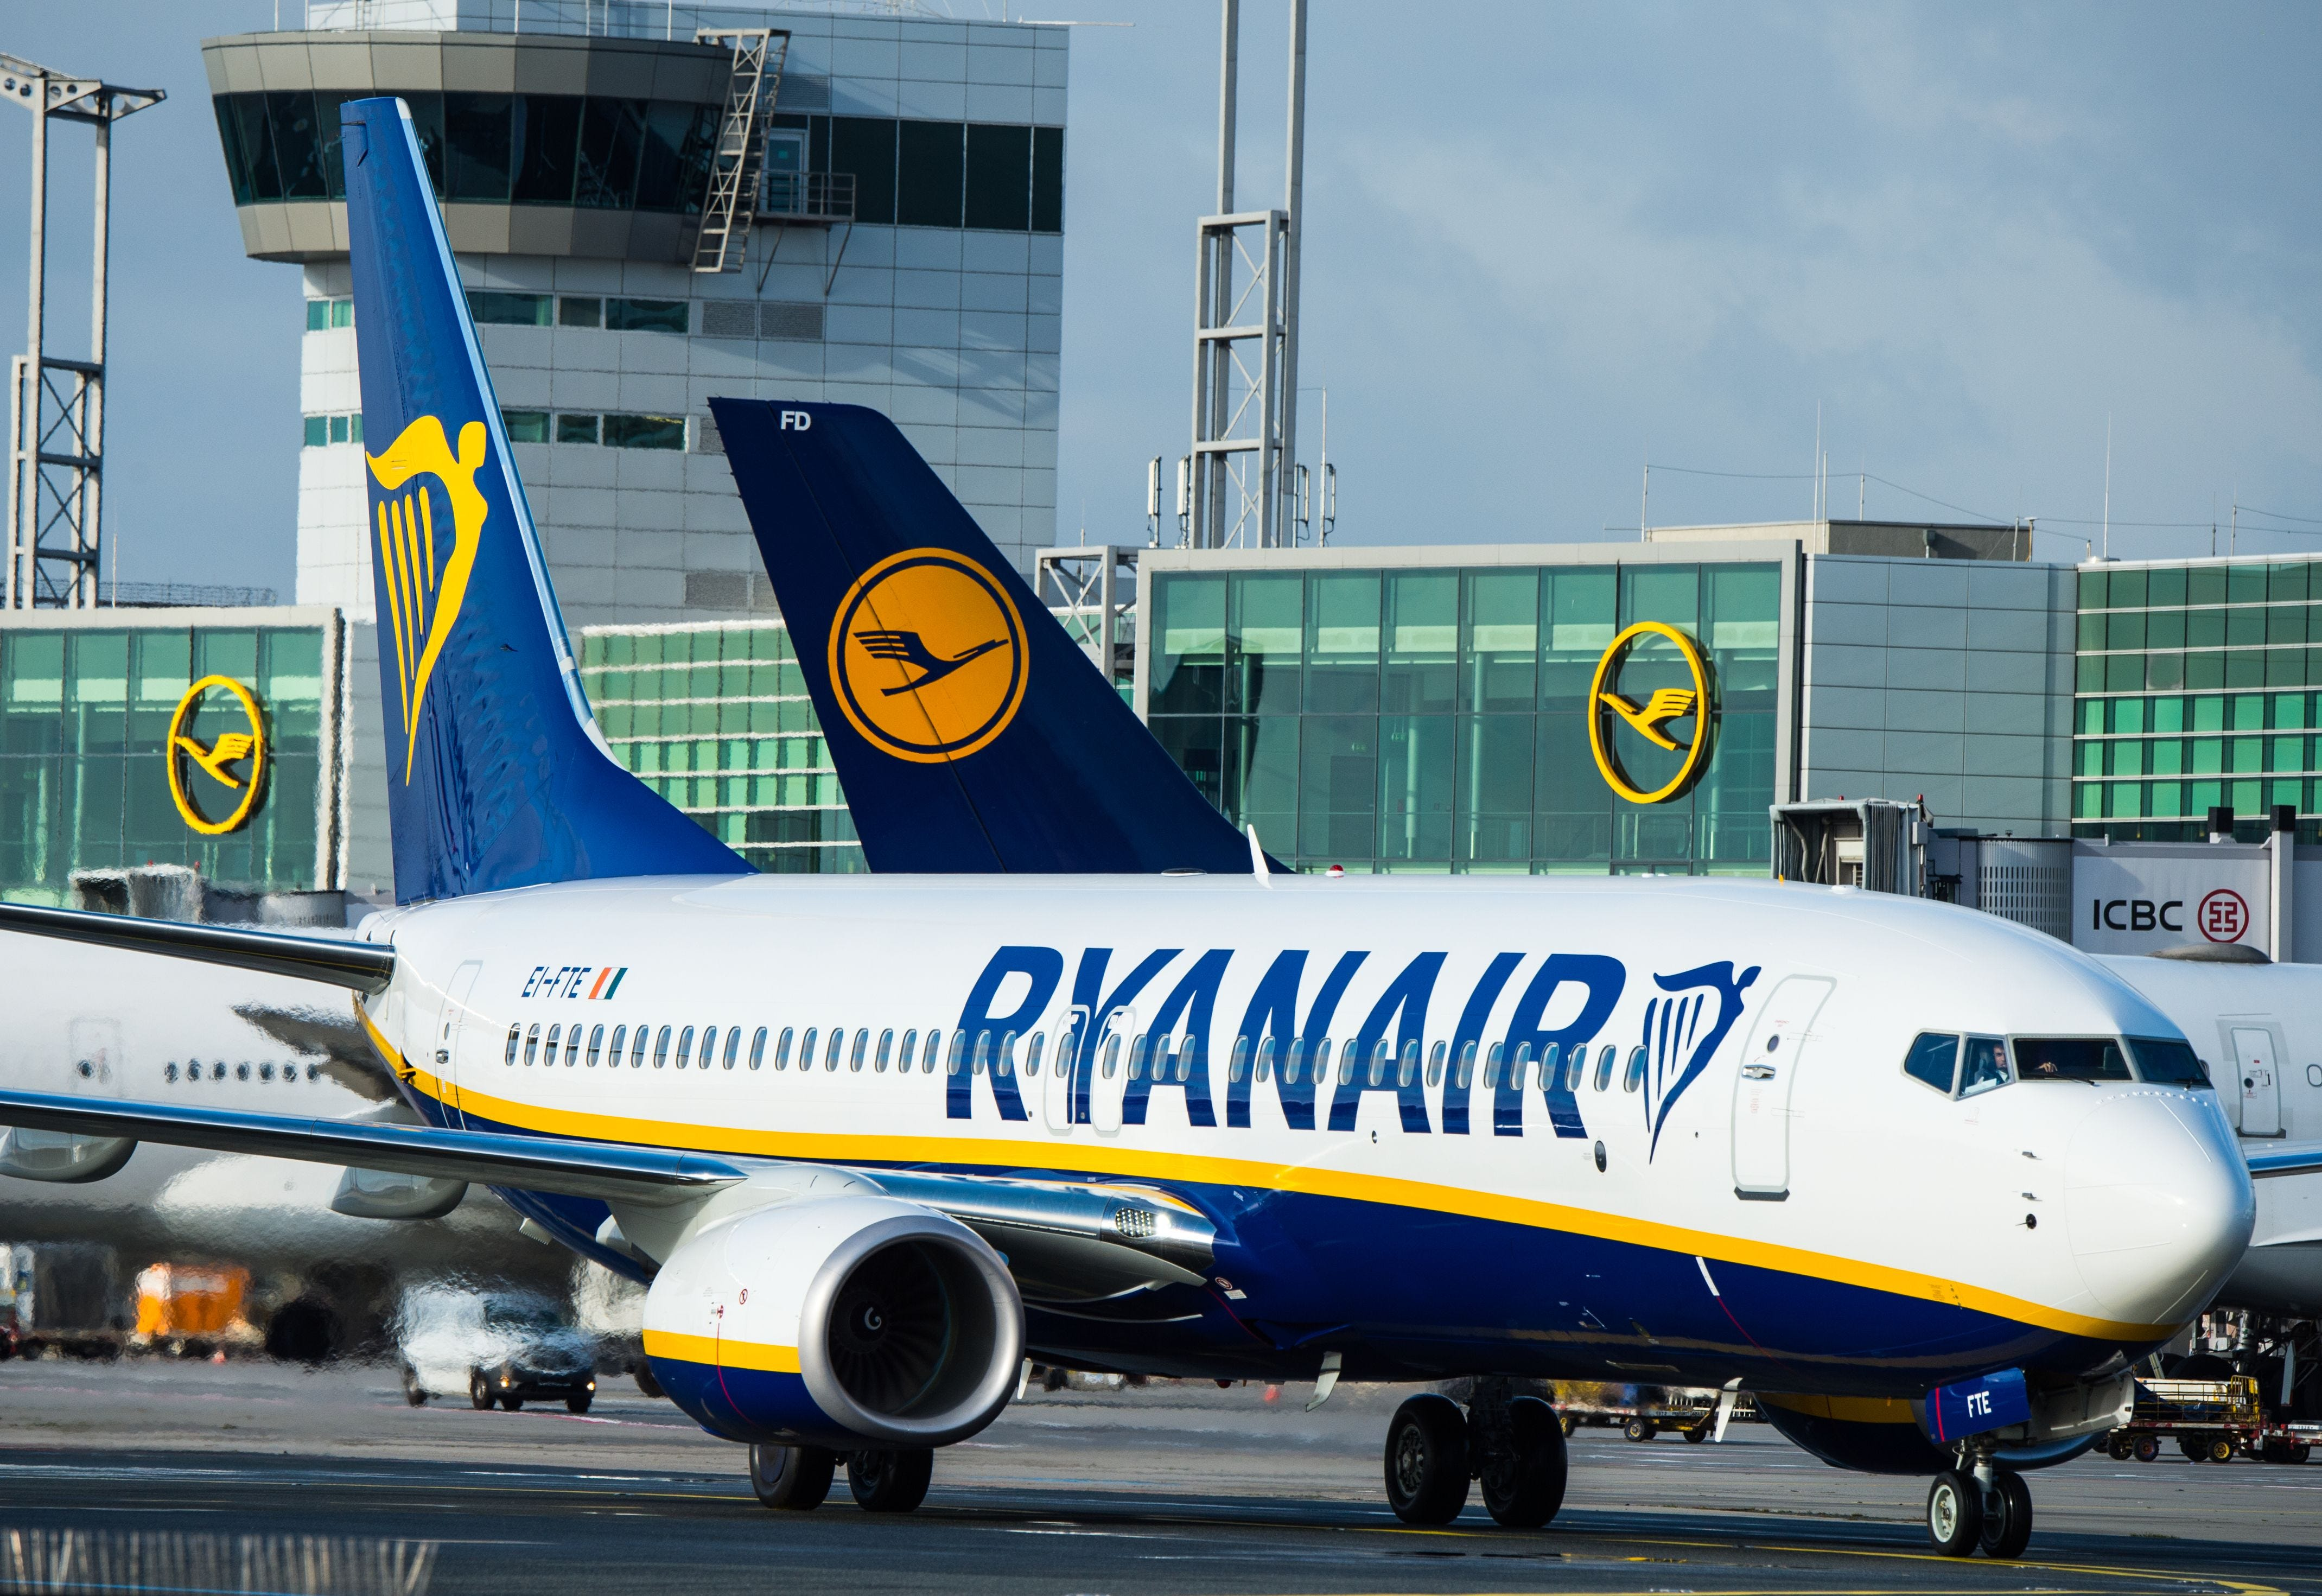 Europe's 30 biggest airlines: Which is No. 1? | USA Today